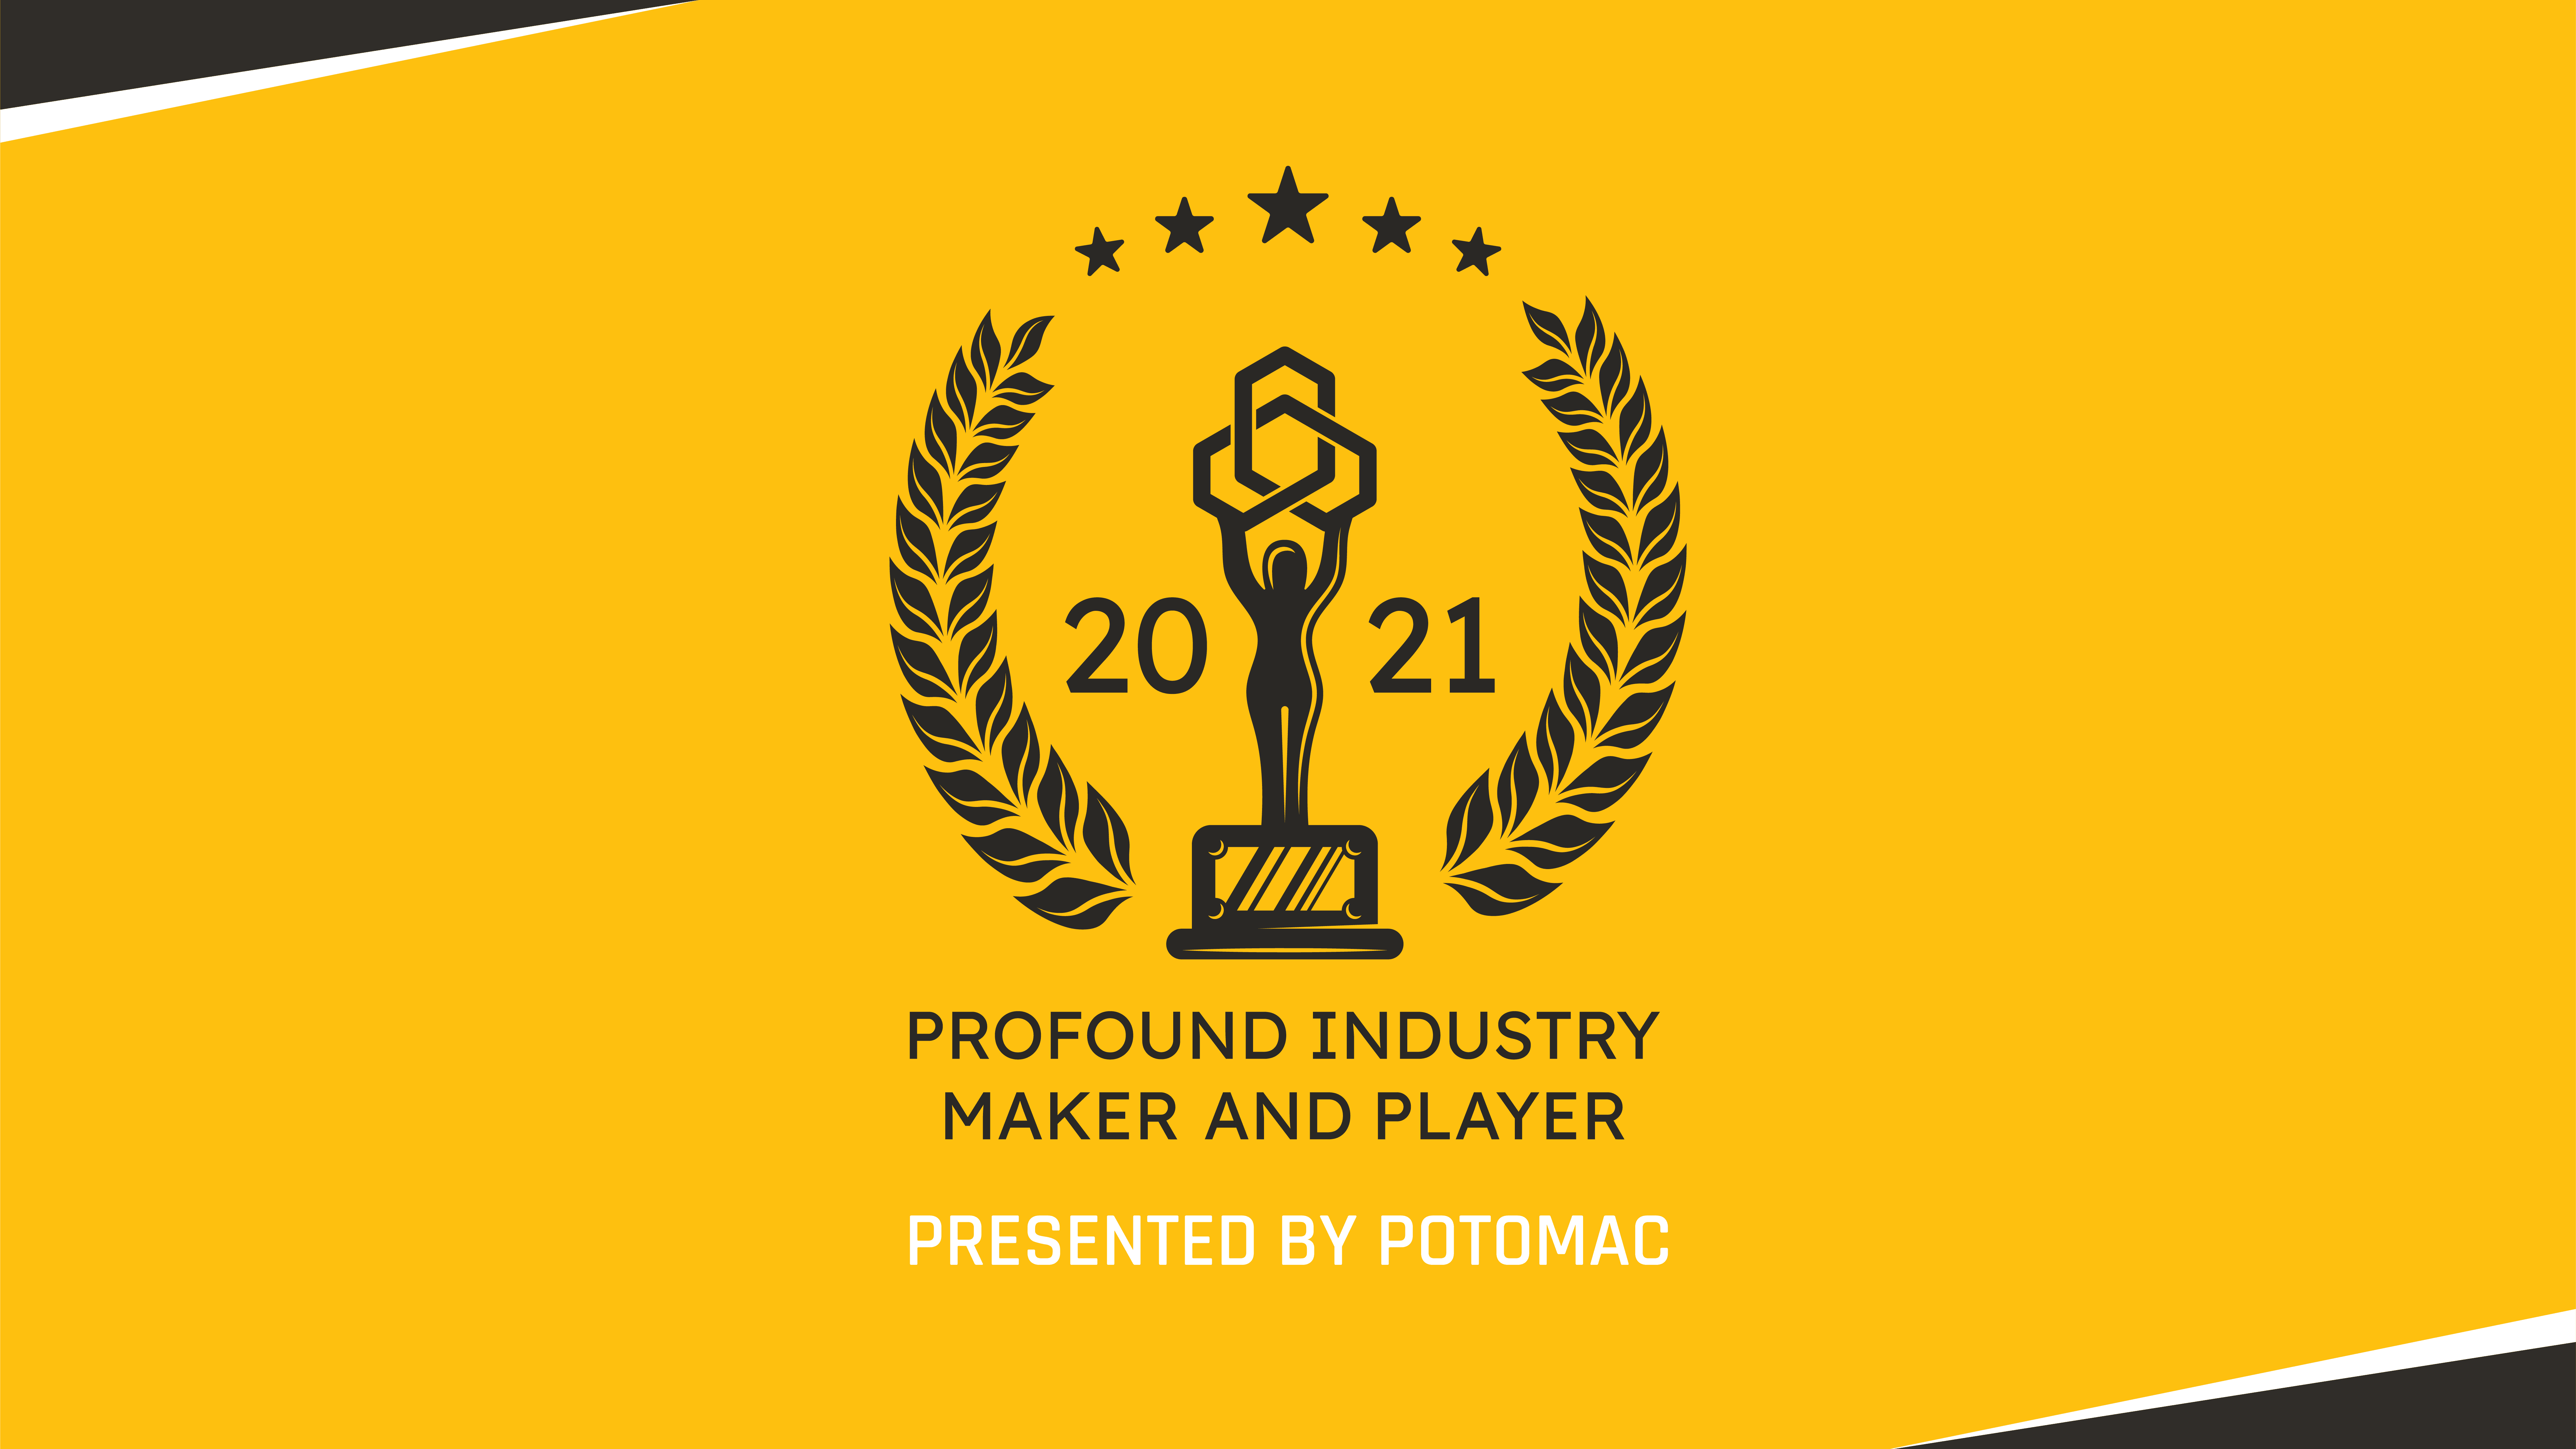 Profound Industry Maker and Player (PIMP) Awards